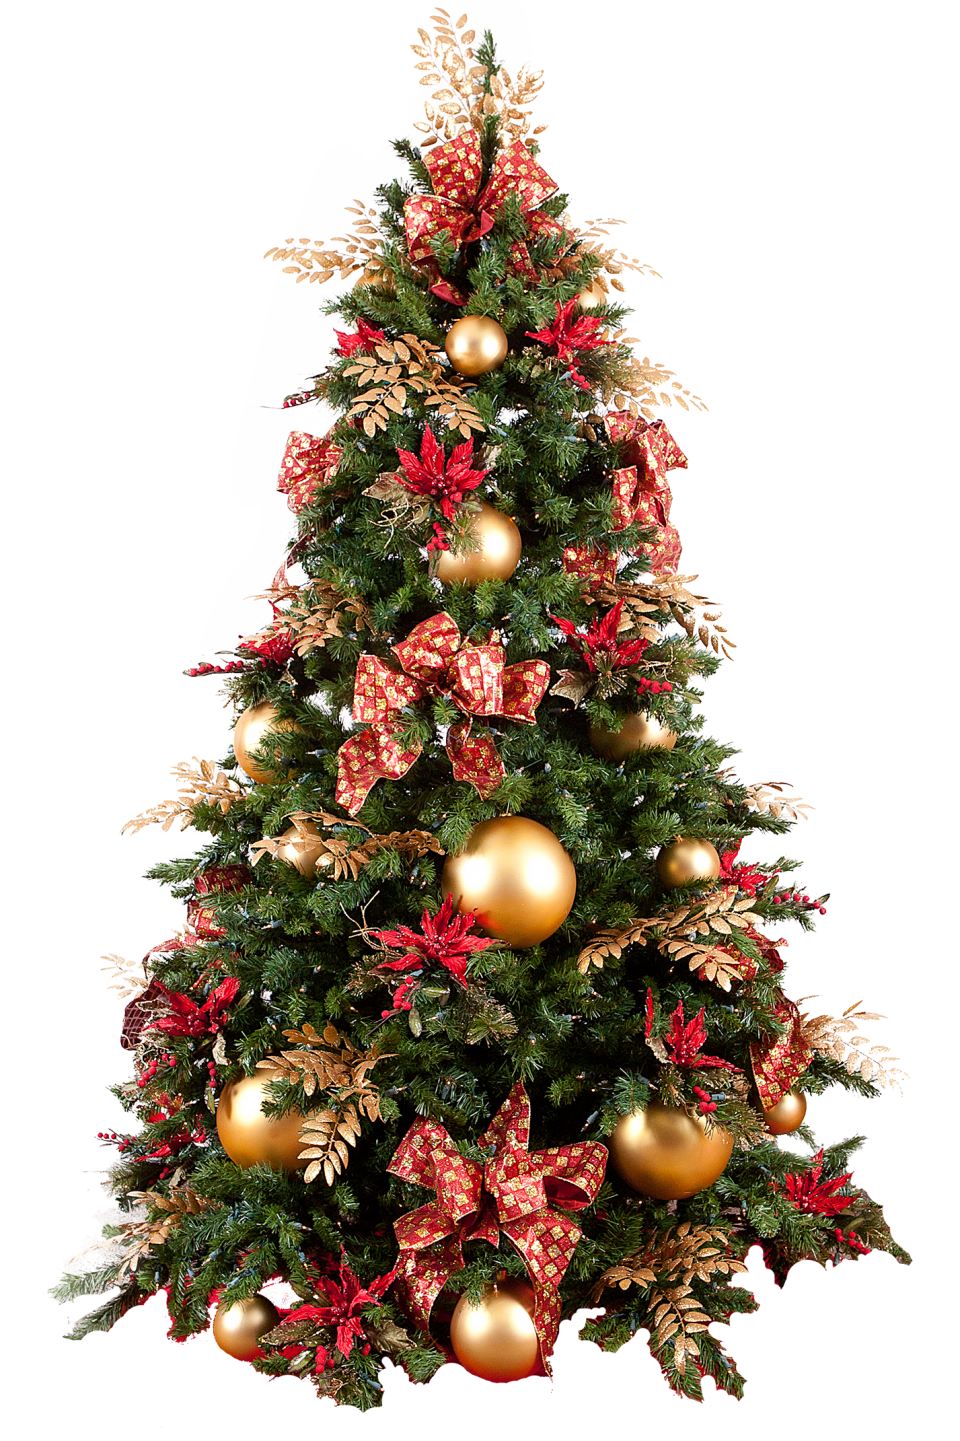 X-mas Tree with Presents PNG Image